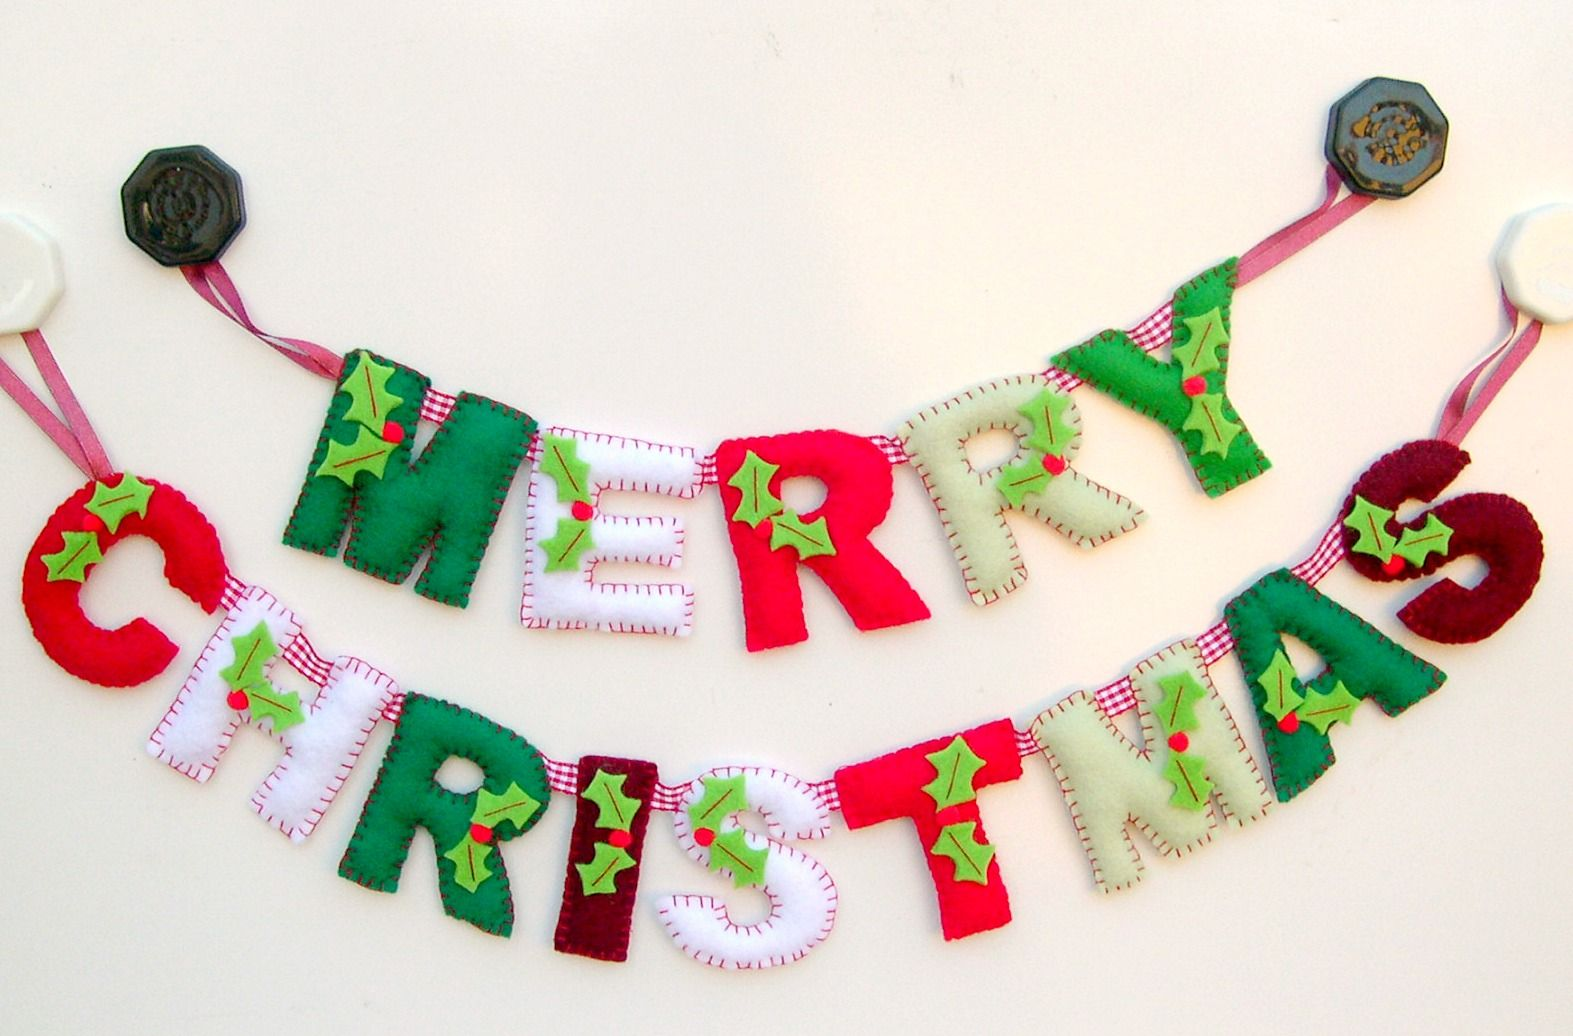 Merry Christmas Greetings 2016 Merry Christmas Pinterest Merry